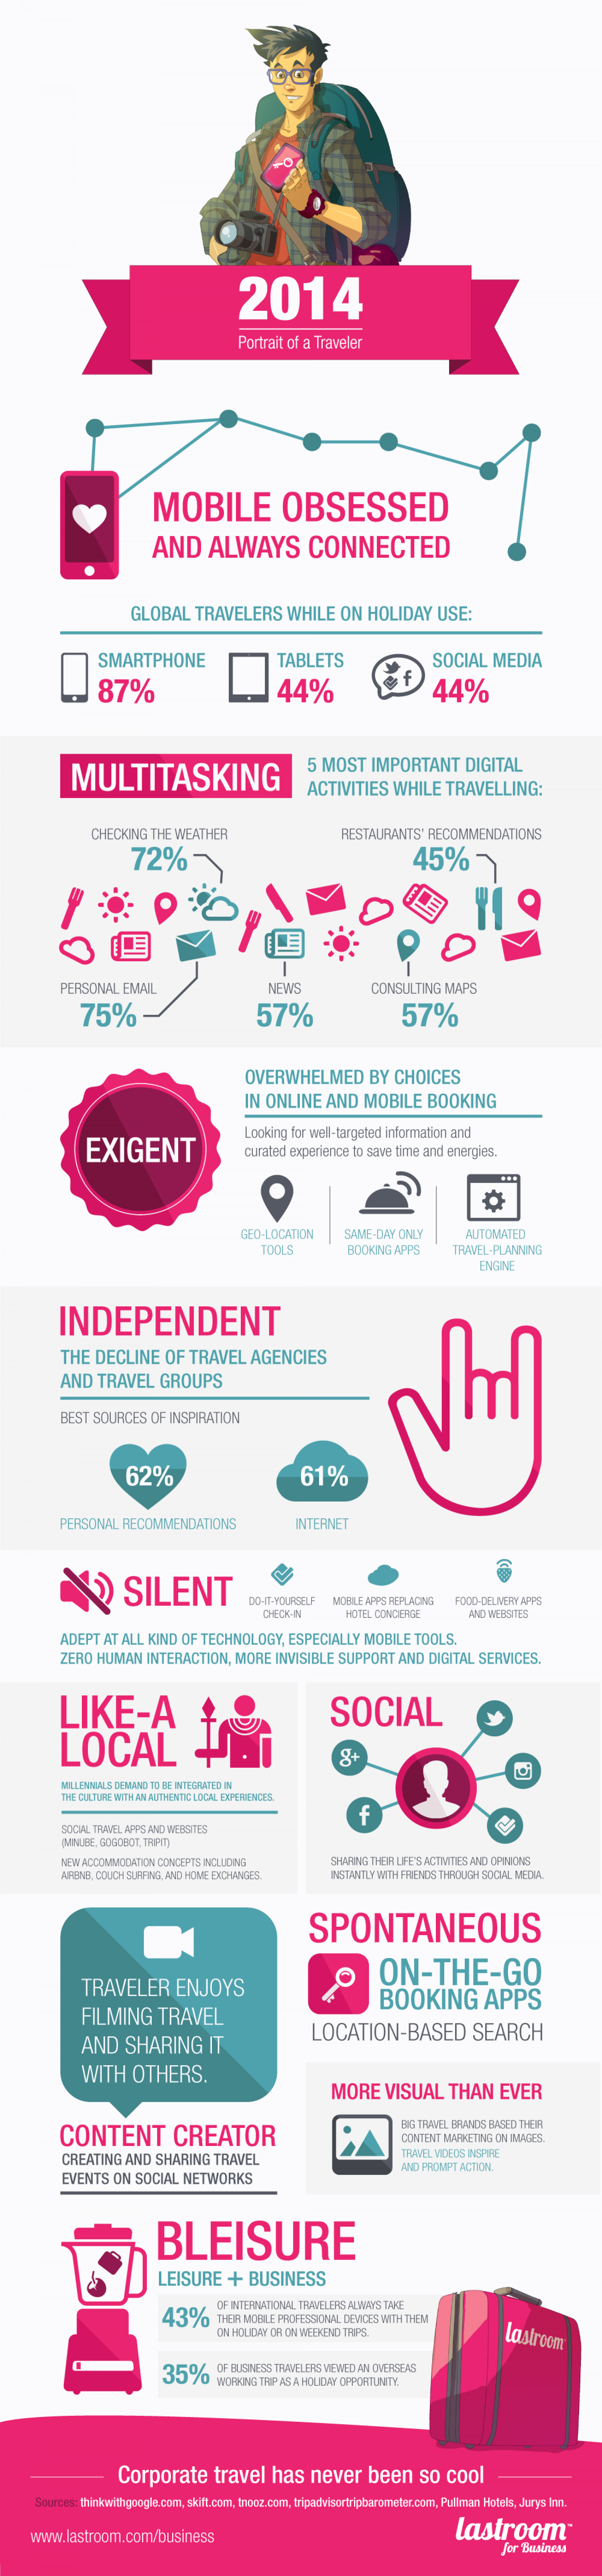 2014: Portrait of a Traveler Infographic